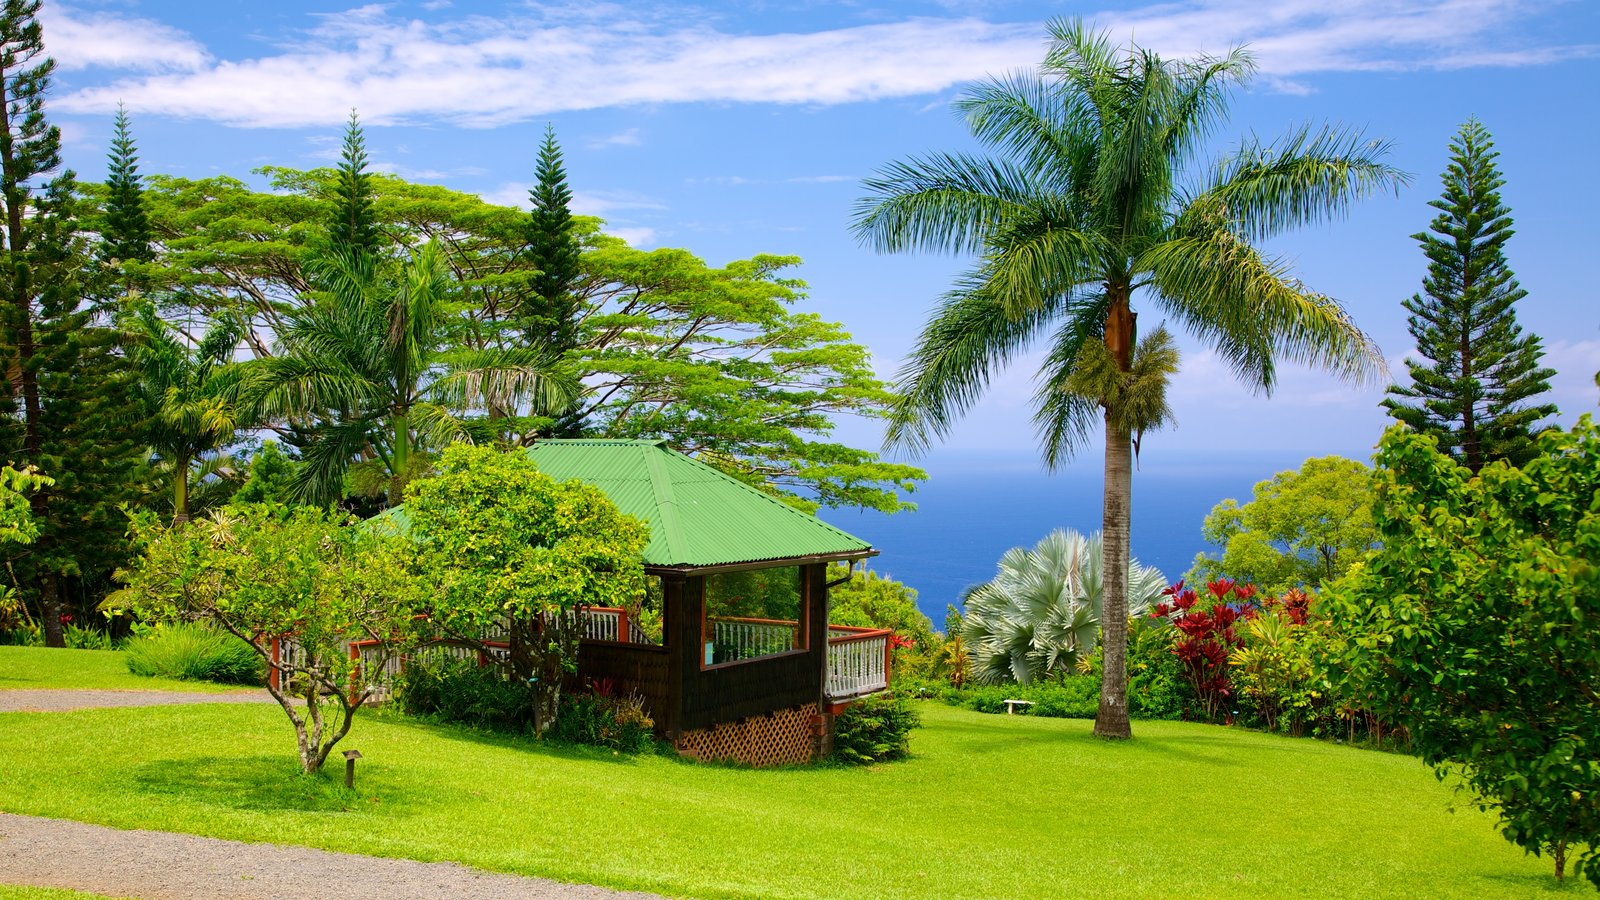 Gardens Parks Pictures View Images Of Maui Island